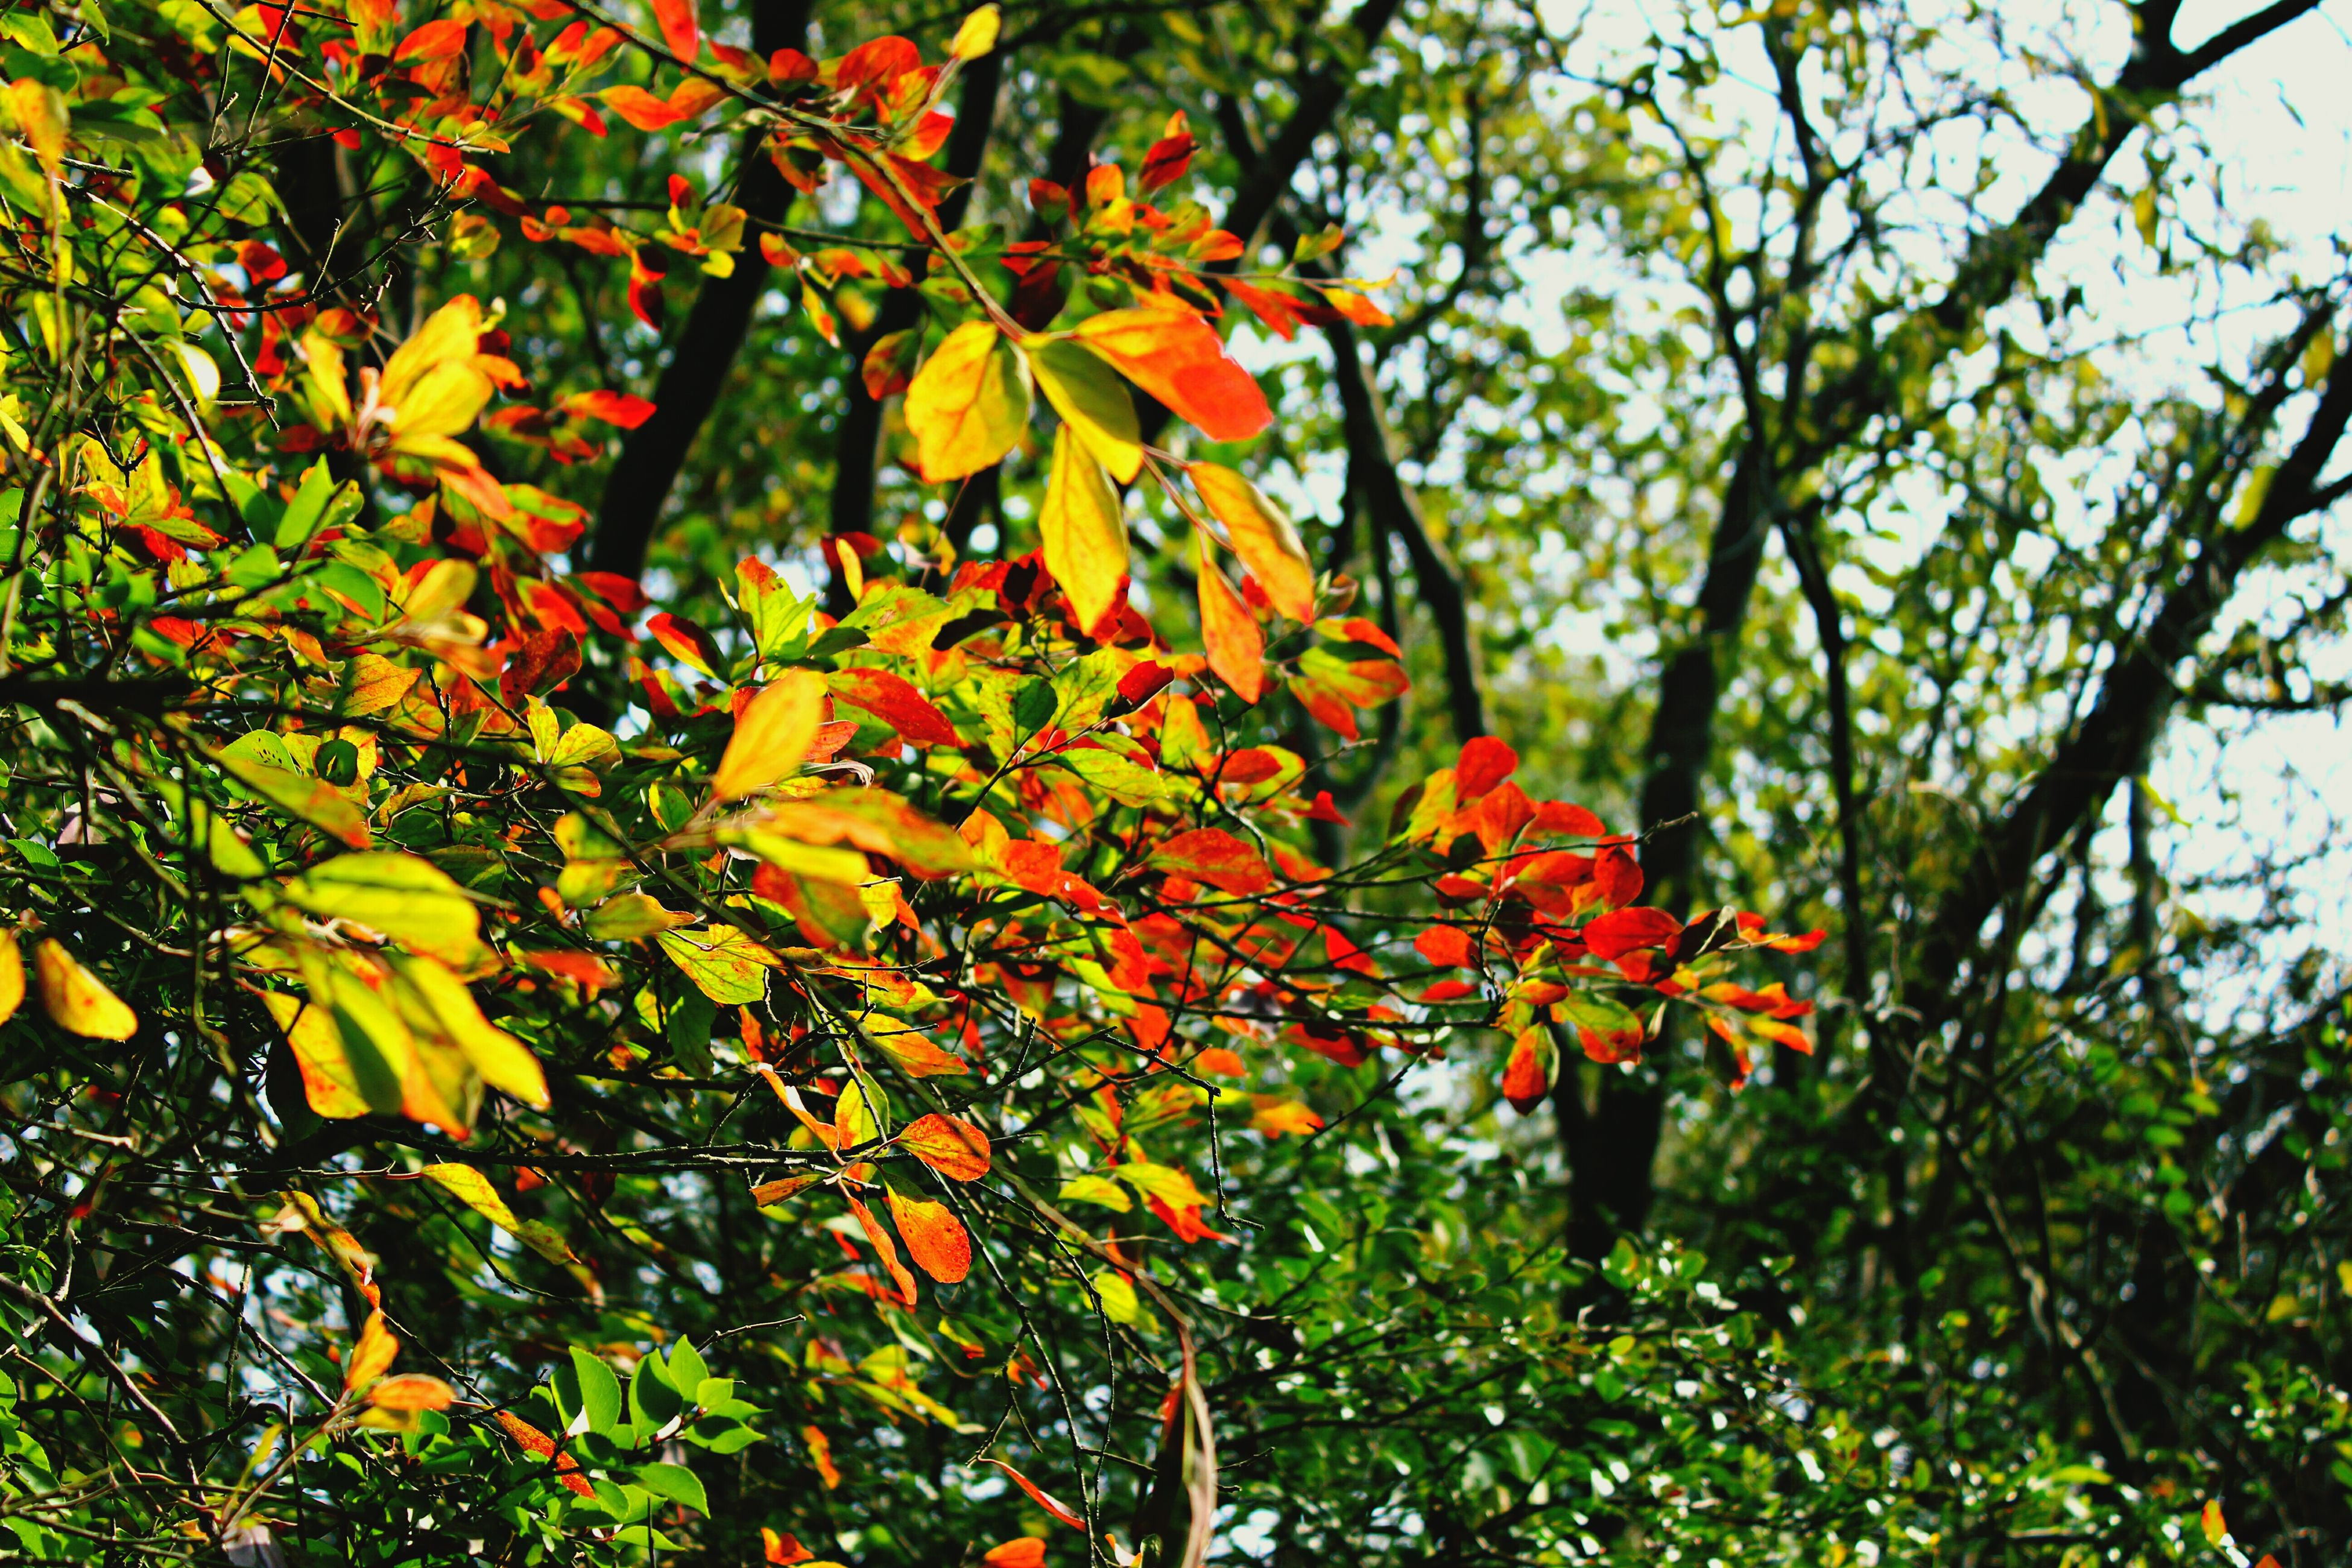 tree, growth, branch, low angle view, leaf, orange color, autumn, nature, beauty in nature, change, season, freshness, red, sunlight, tranquility, day, green color, outdoors, no people, plant